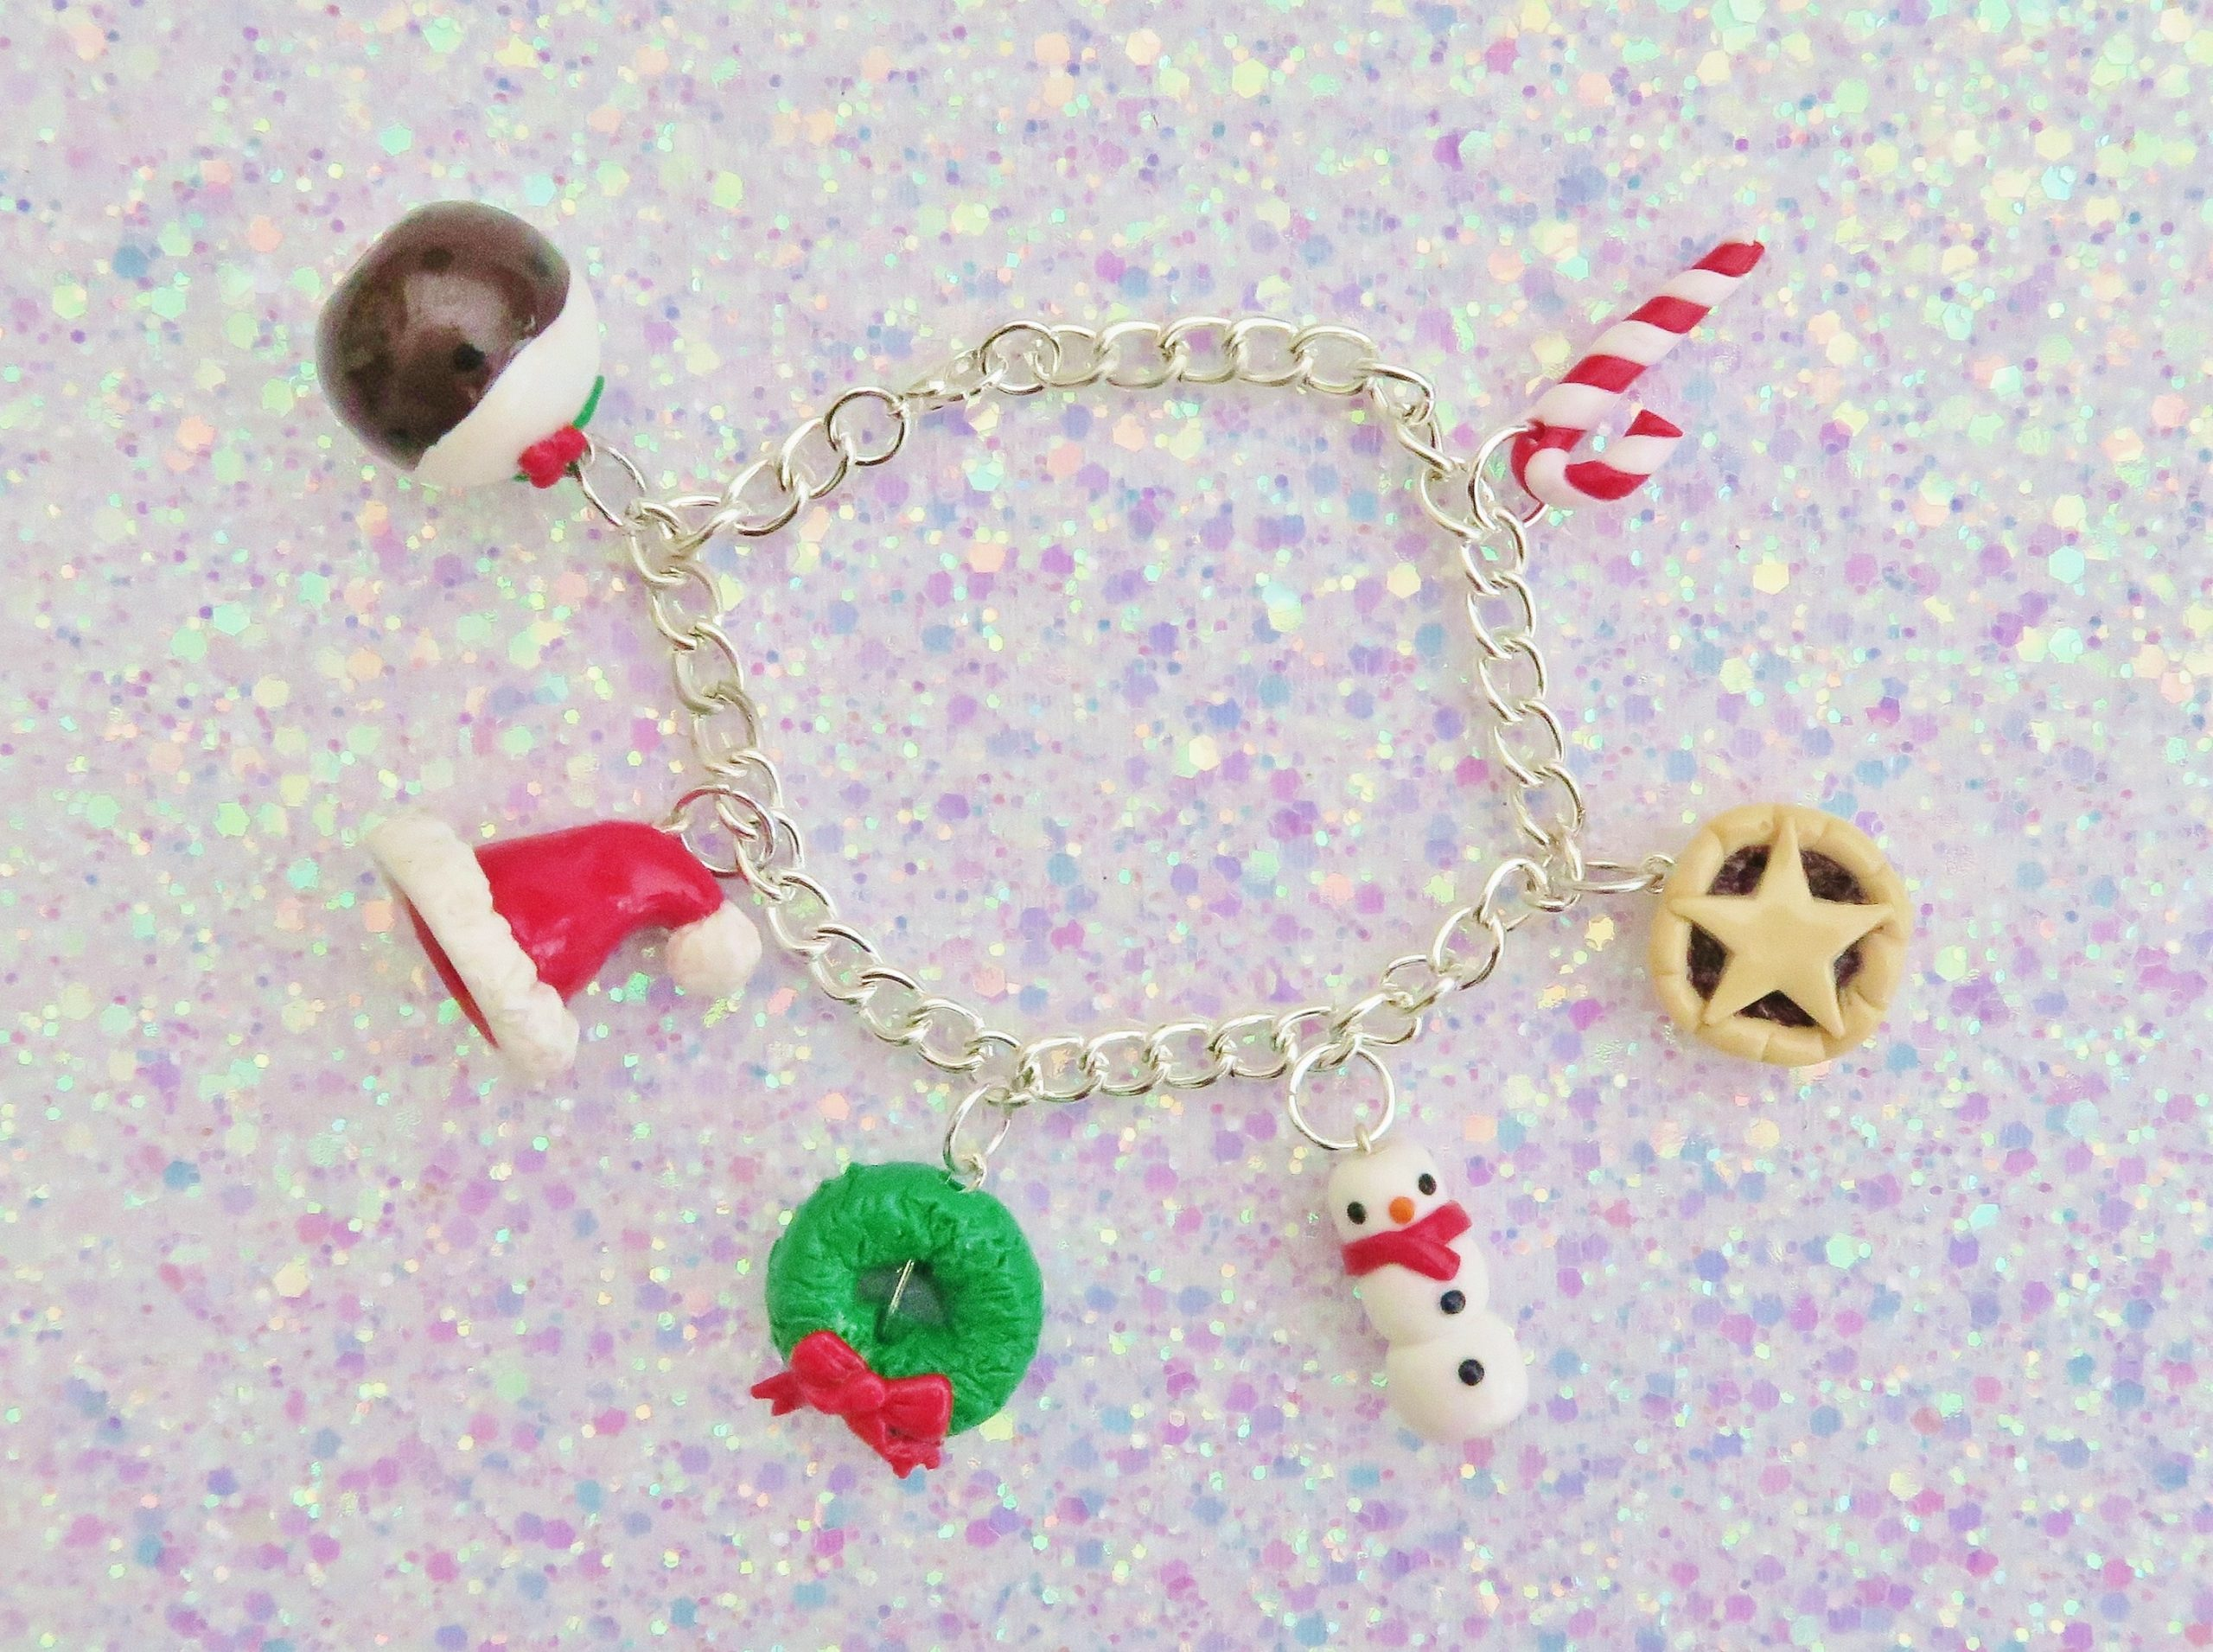 Handmade, Fimo, clay, polymerclay, jewellery, jewelry, novelty, Christmas, festive, cute, craft, gift, present, for her, Christmas pudding, Santa hat, holly wreath, mince pie, candy cane, sweet, scarf, snowman, statement, charm, bracelet,